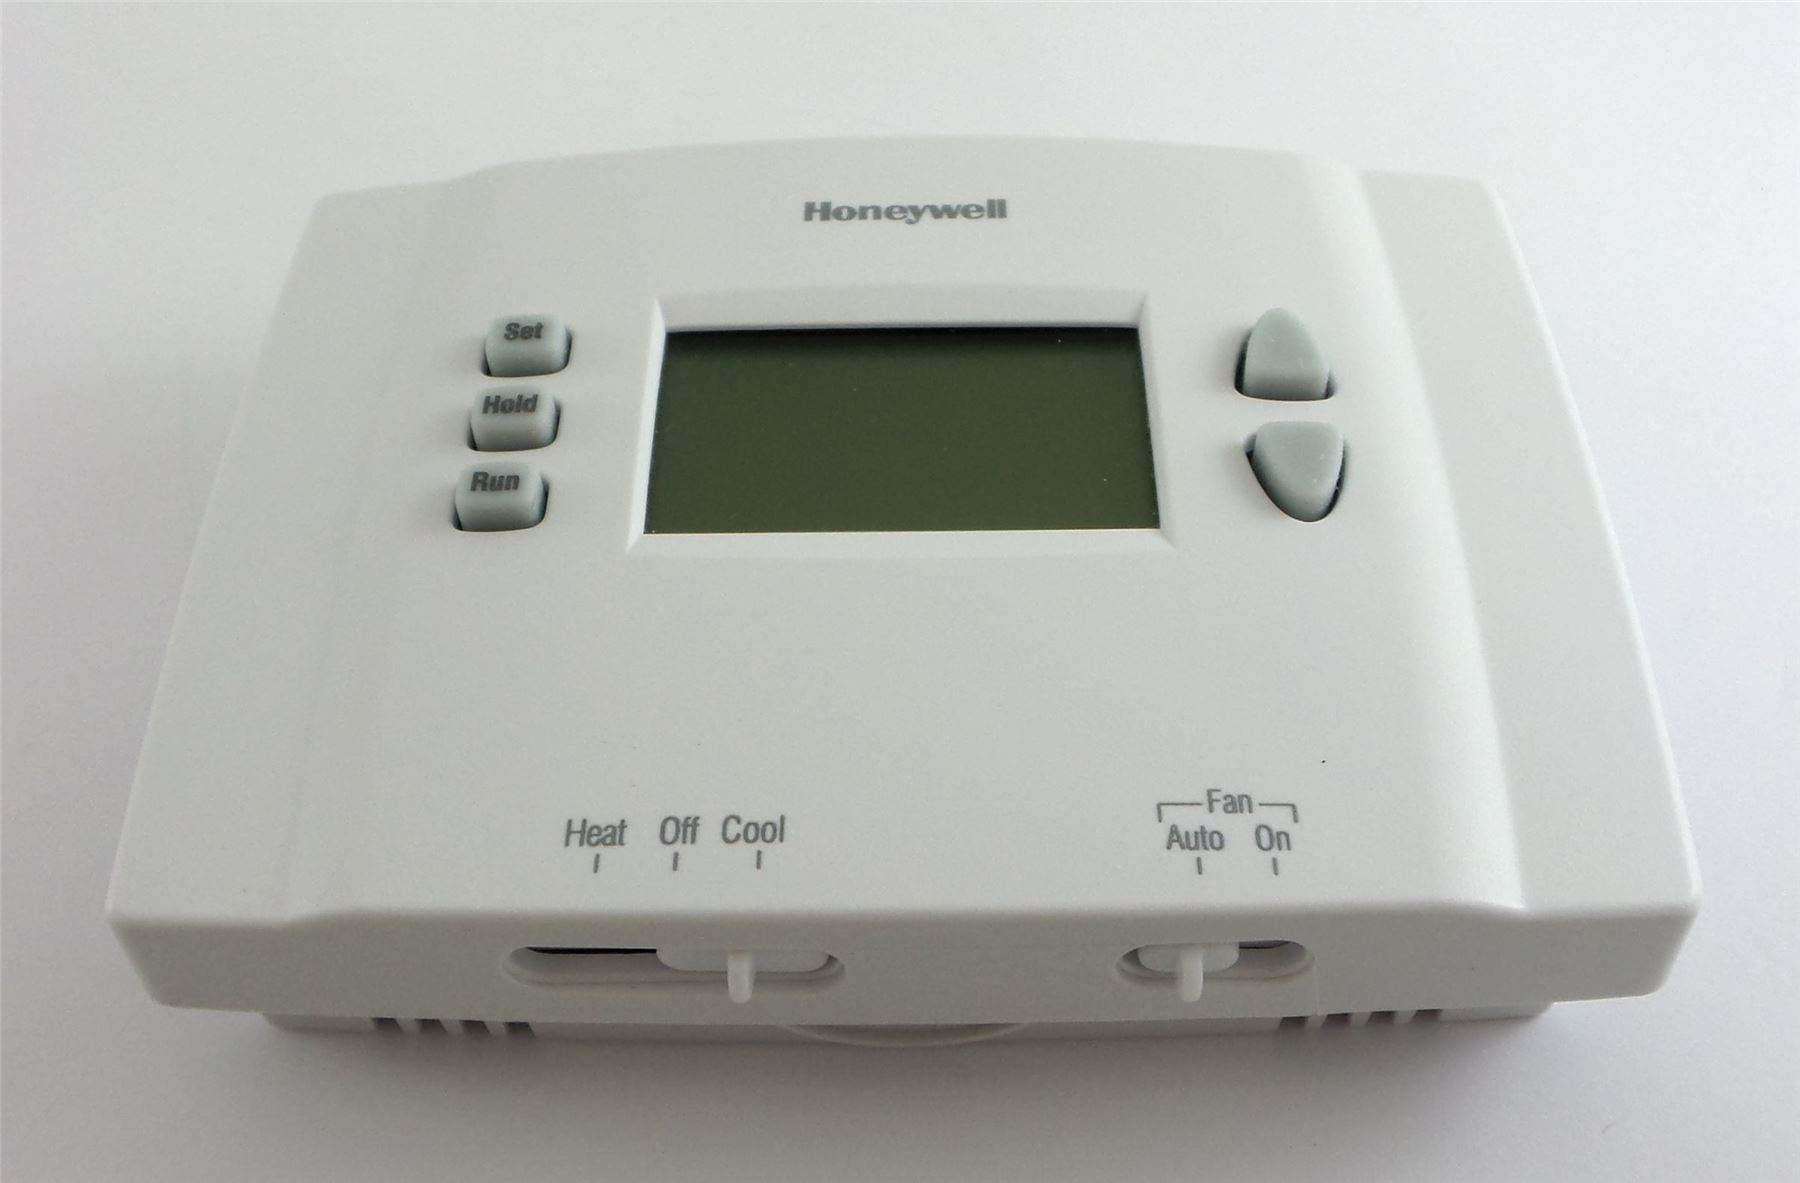 Honeywell Programmable Thermostat Details About Honeywell Programmable Thermostat Backlit Display 7 Day Rth2510b White See Desc